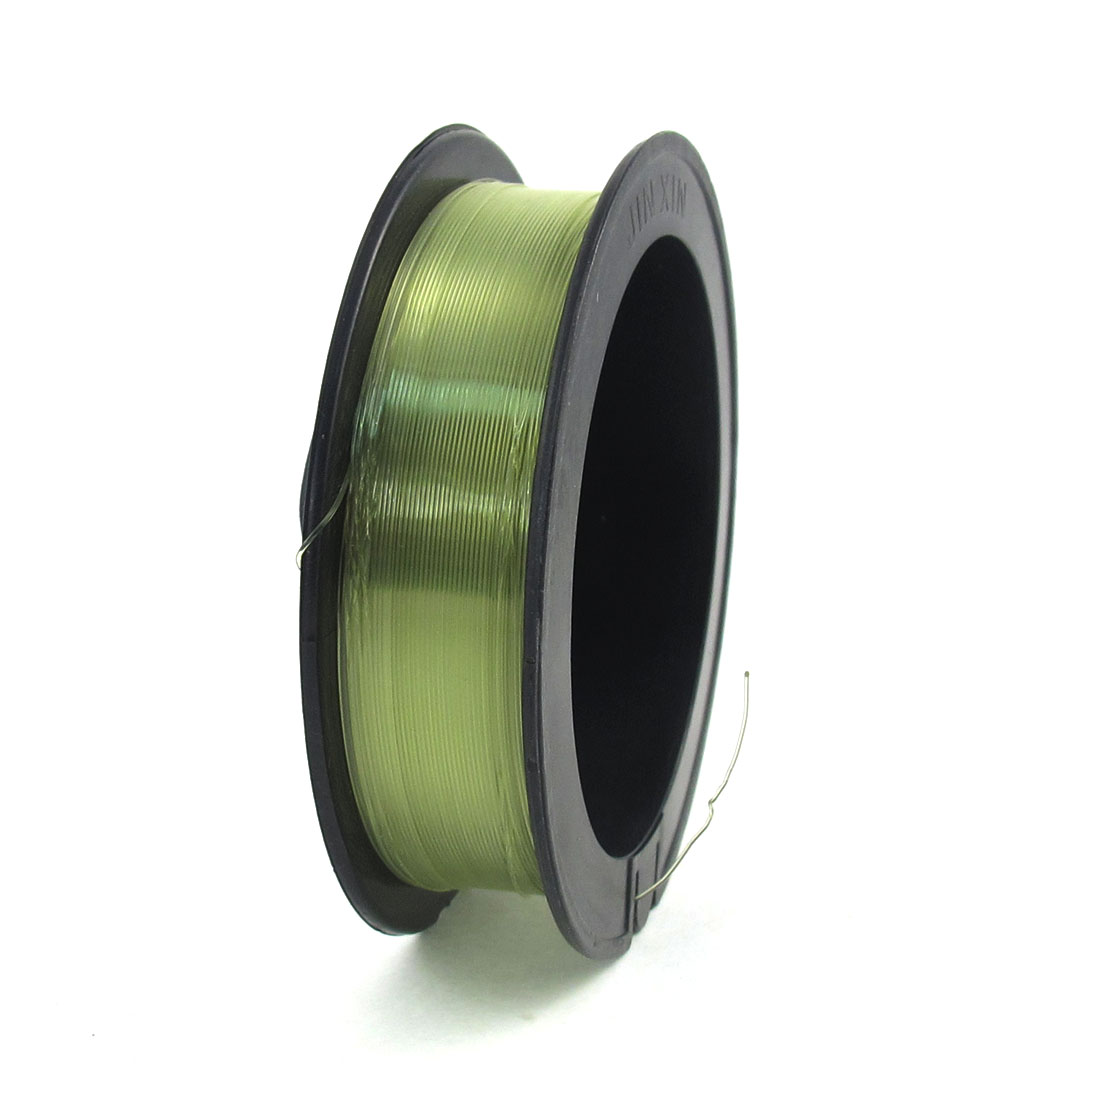 0.470mm Dia 8.0# 17.5Kg Capacity Light Green Fishing Line Thread Reel 100M